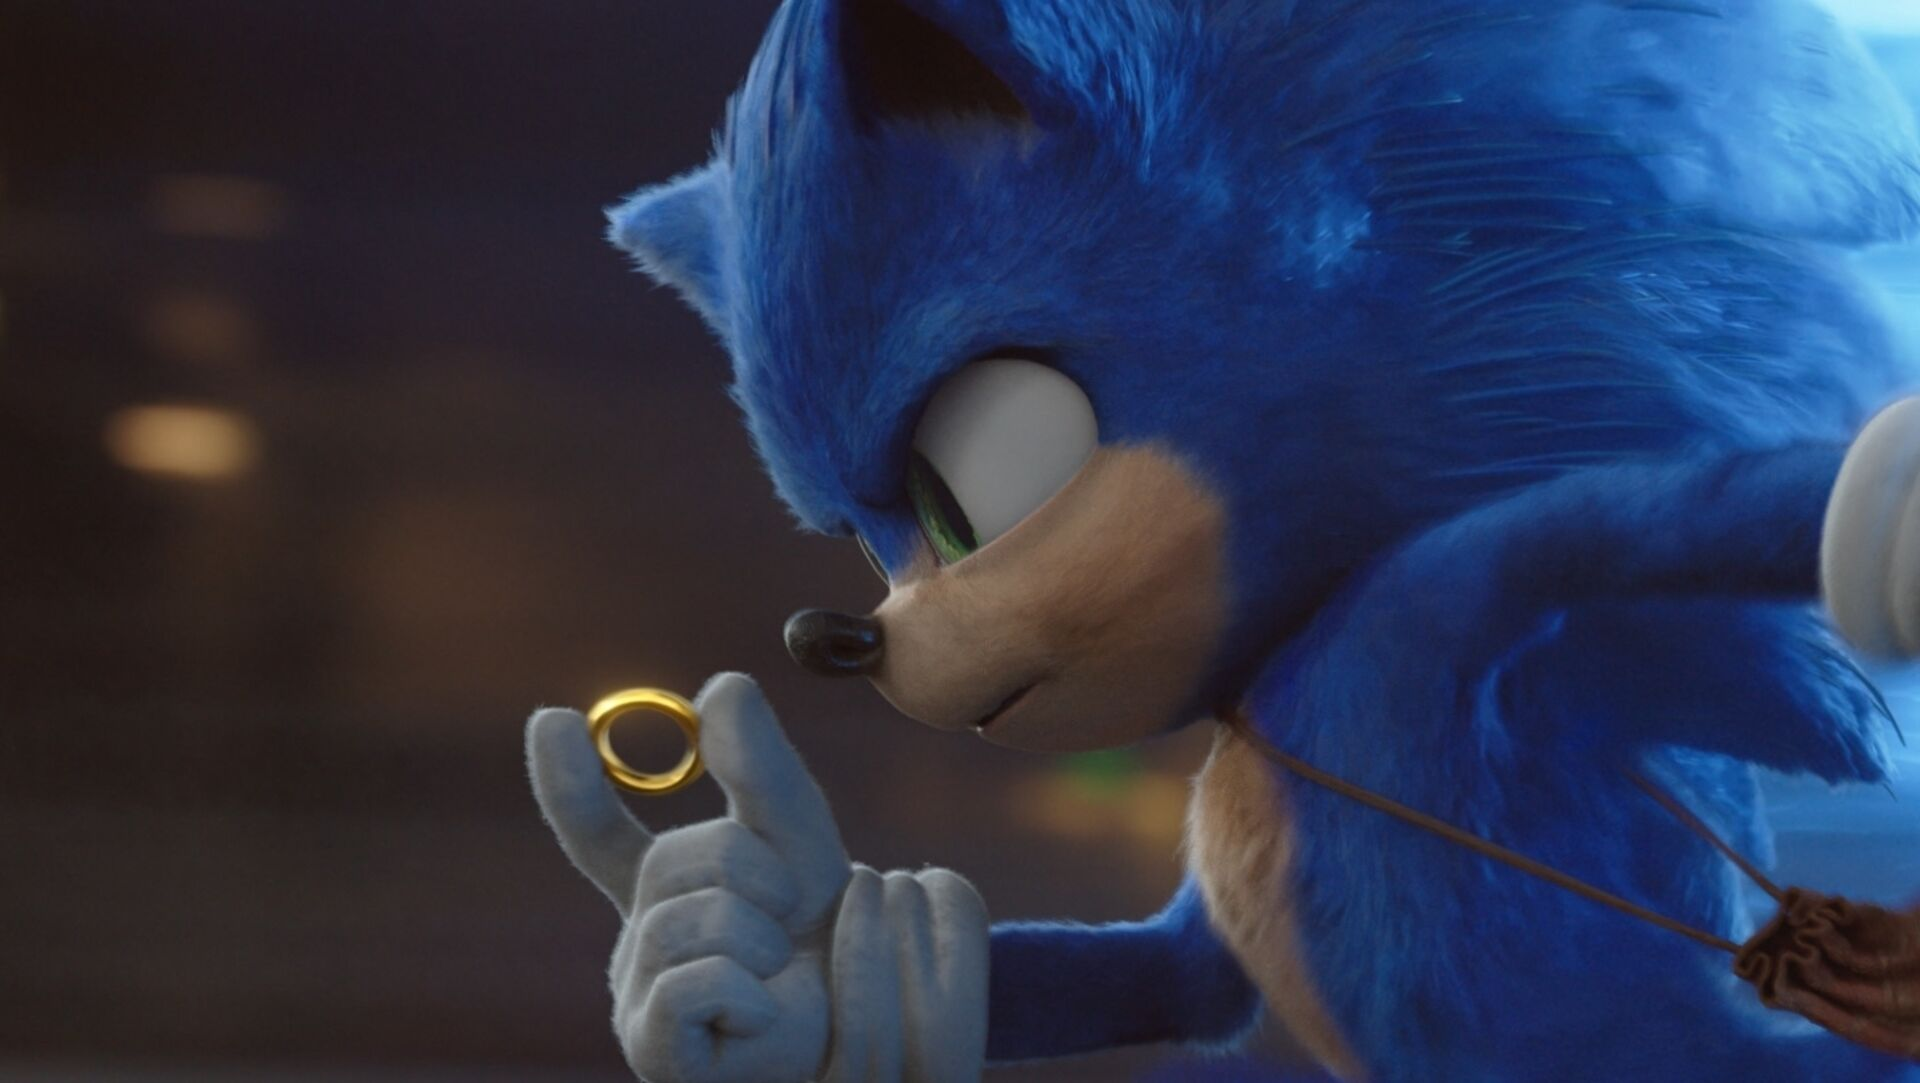 Sonic The Hedgehog Movie Review A Charmless Cut And Paste Job Eurogamer Net